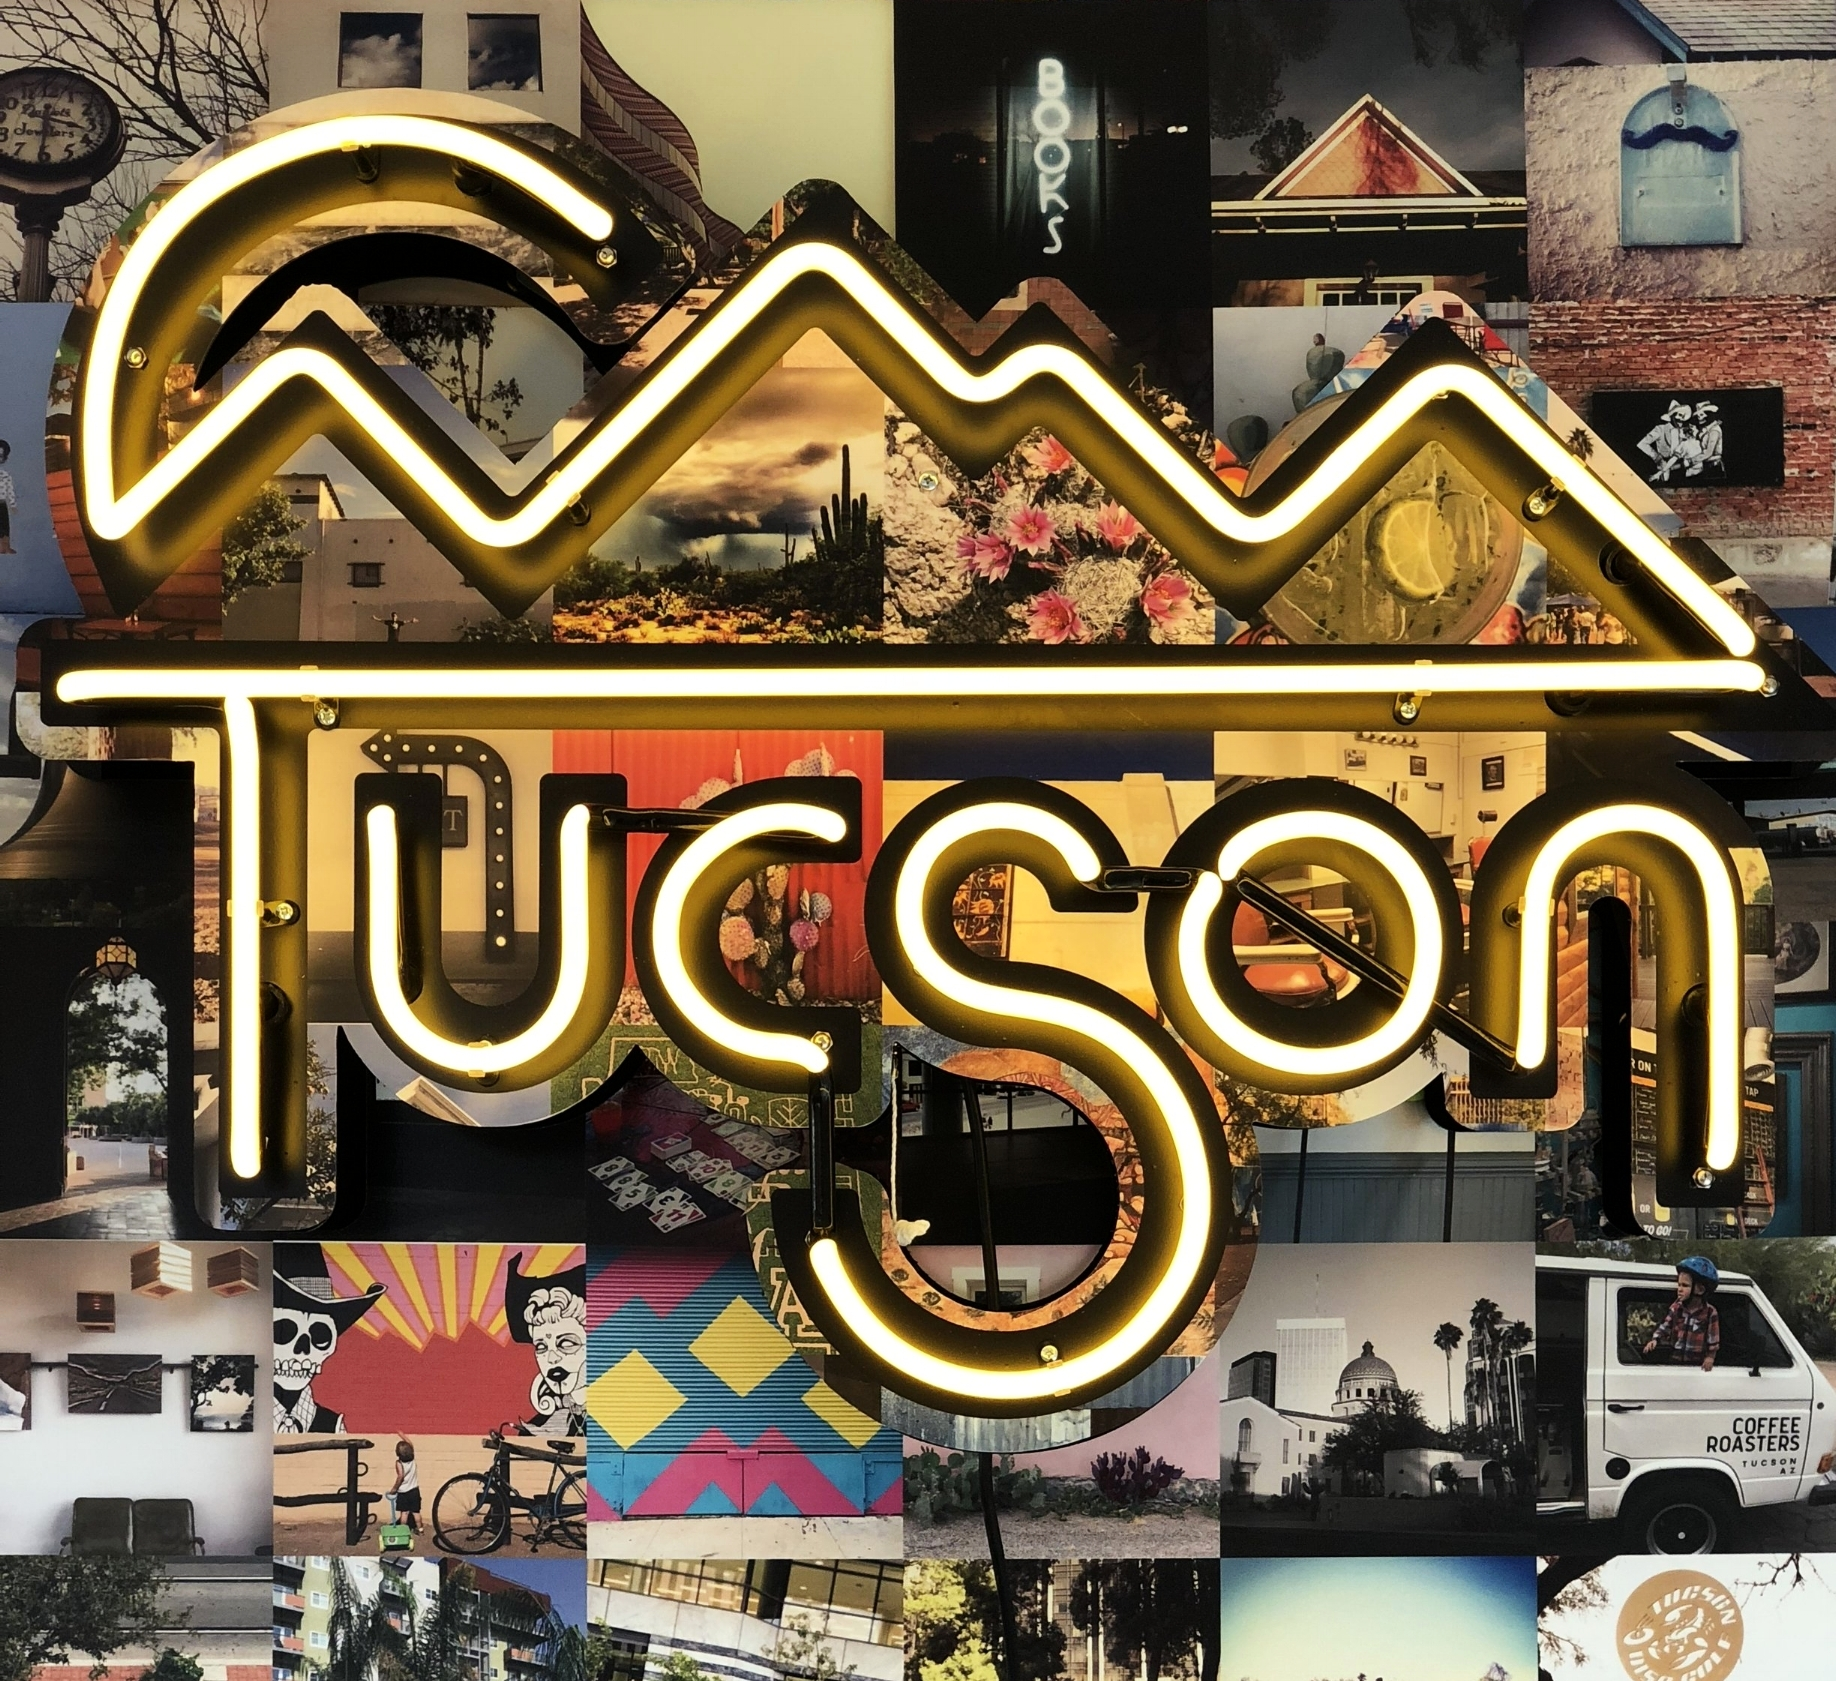 Neon sign designed b y Saywells Design Co ., installed and built by  Cook and Company Signmakers  for Why I Love Where I Live.